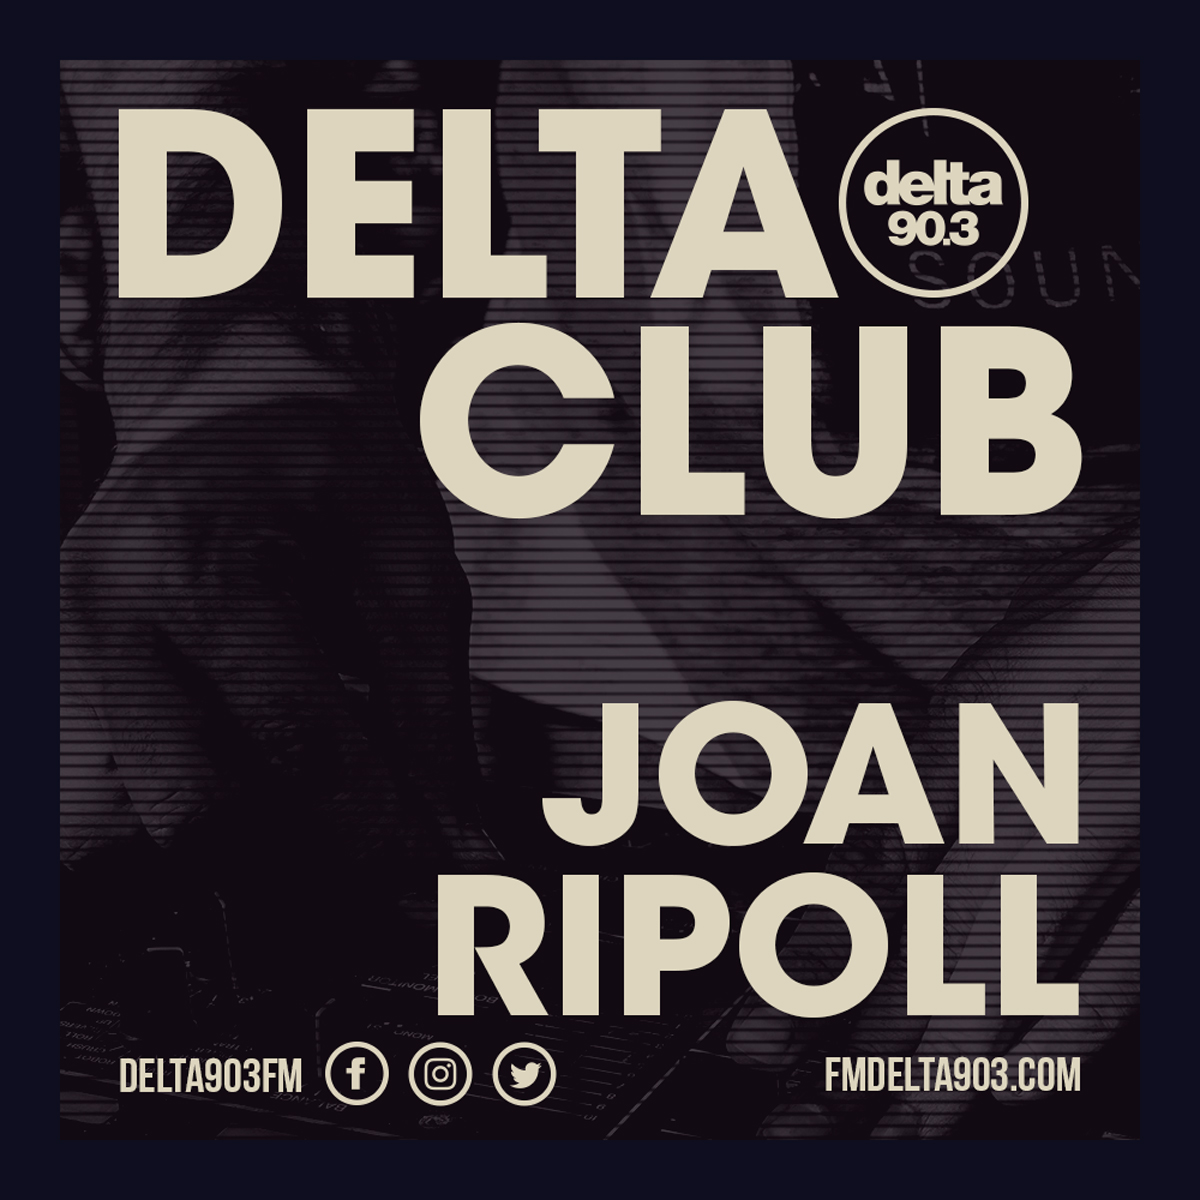 Delta Podcasts - Delta Club presents Joan Ripoll (27.06.2018)